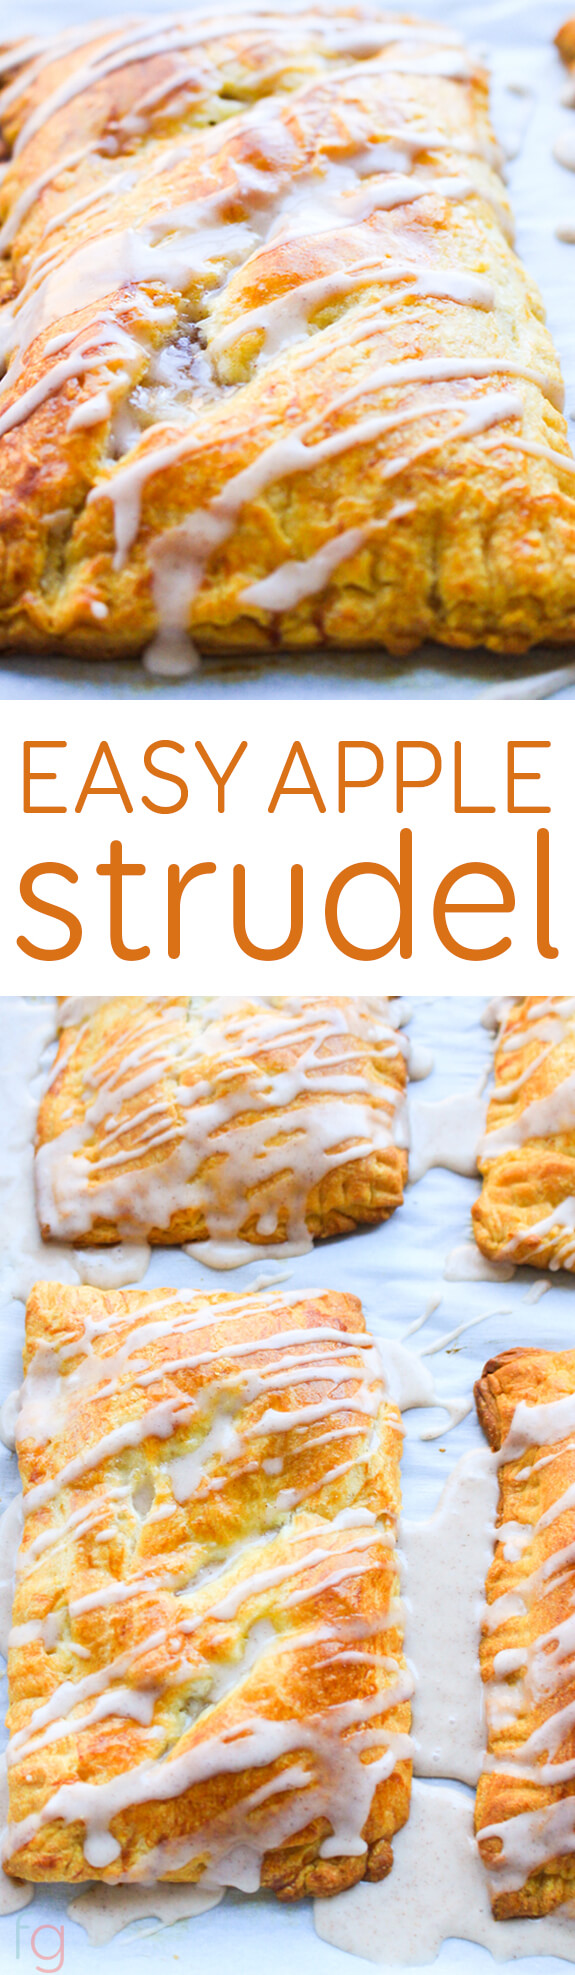 Easy Apple Strudel With Cinnamon Icing {WW 8 Points, Vegetarian}